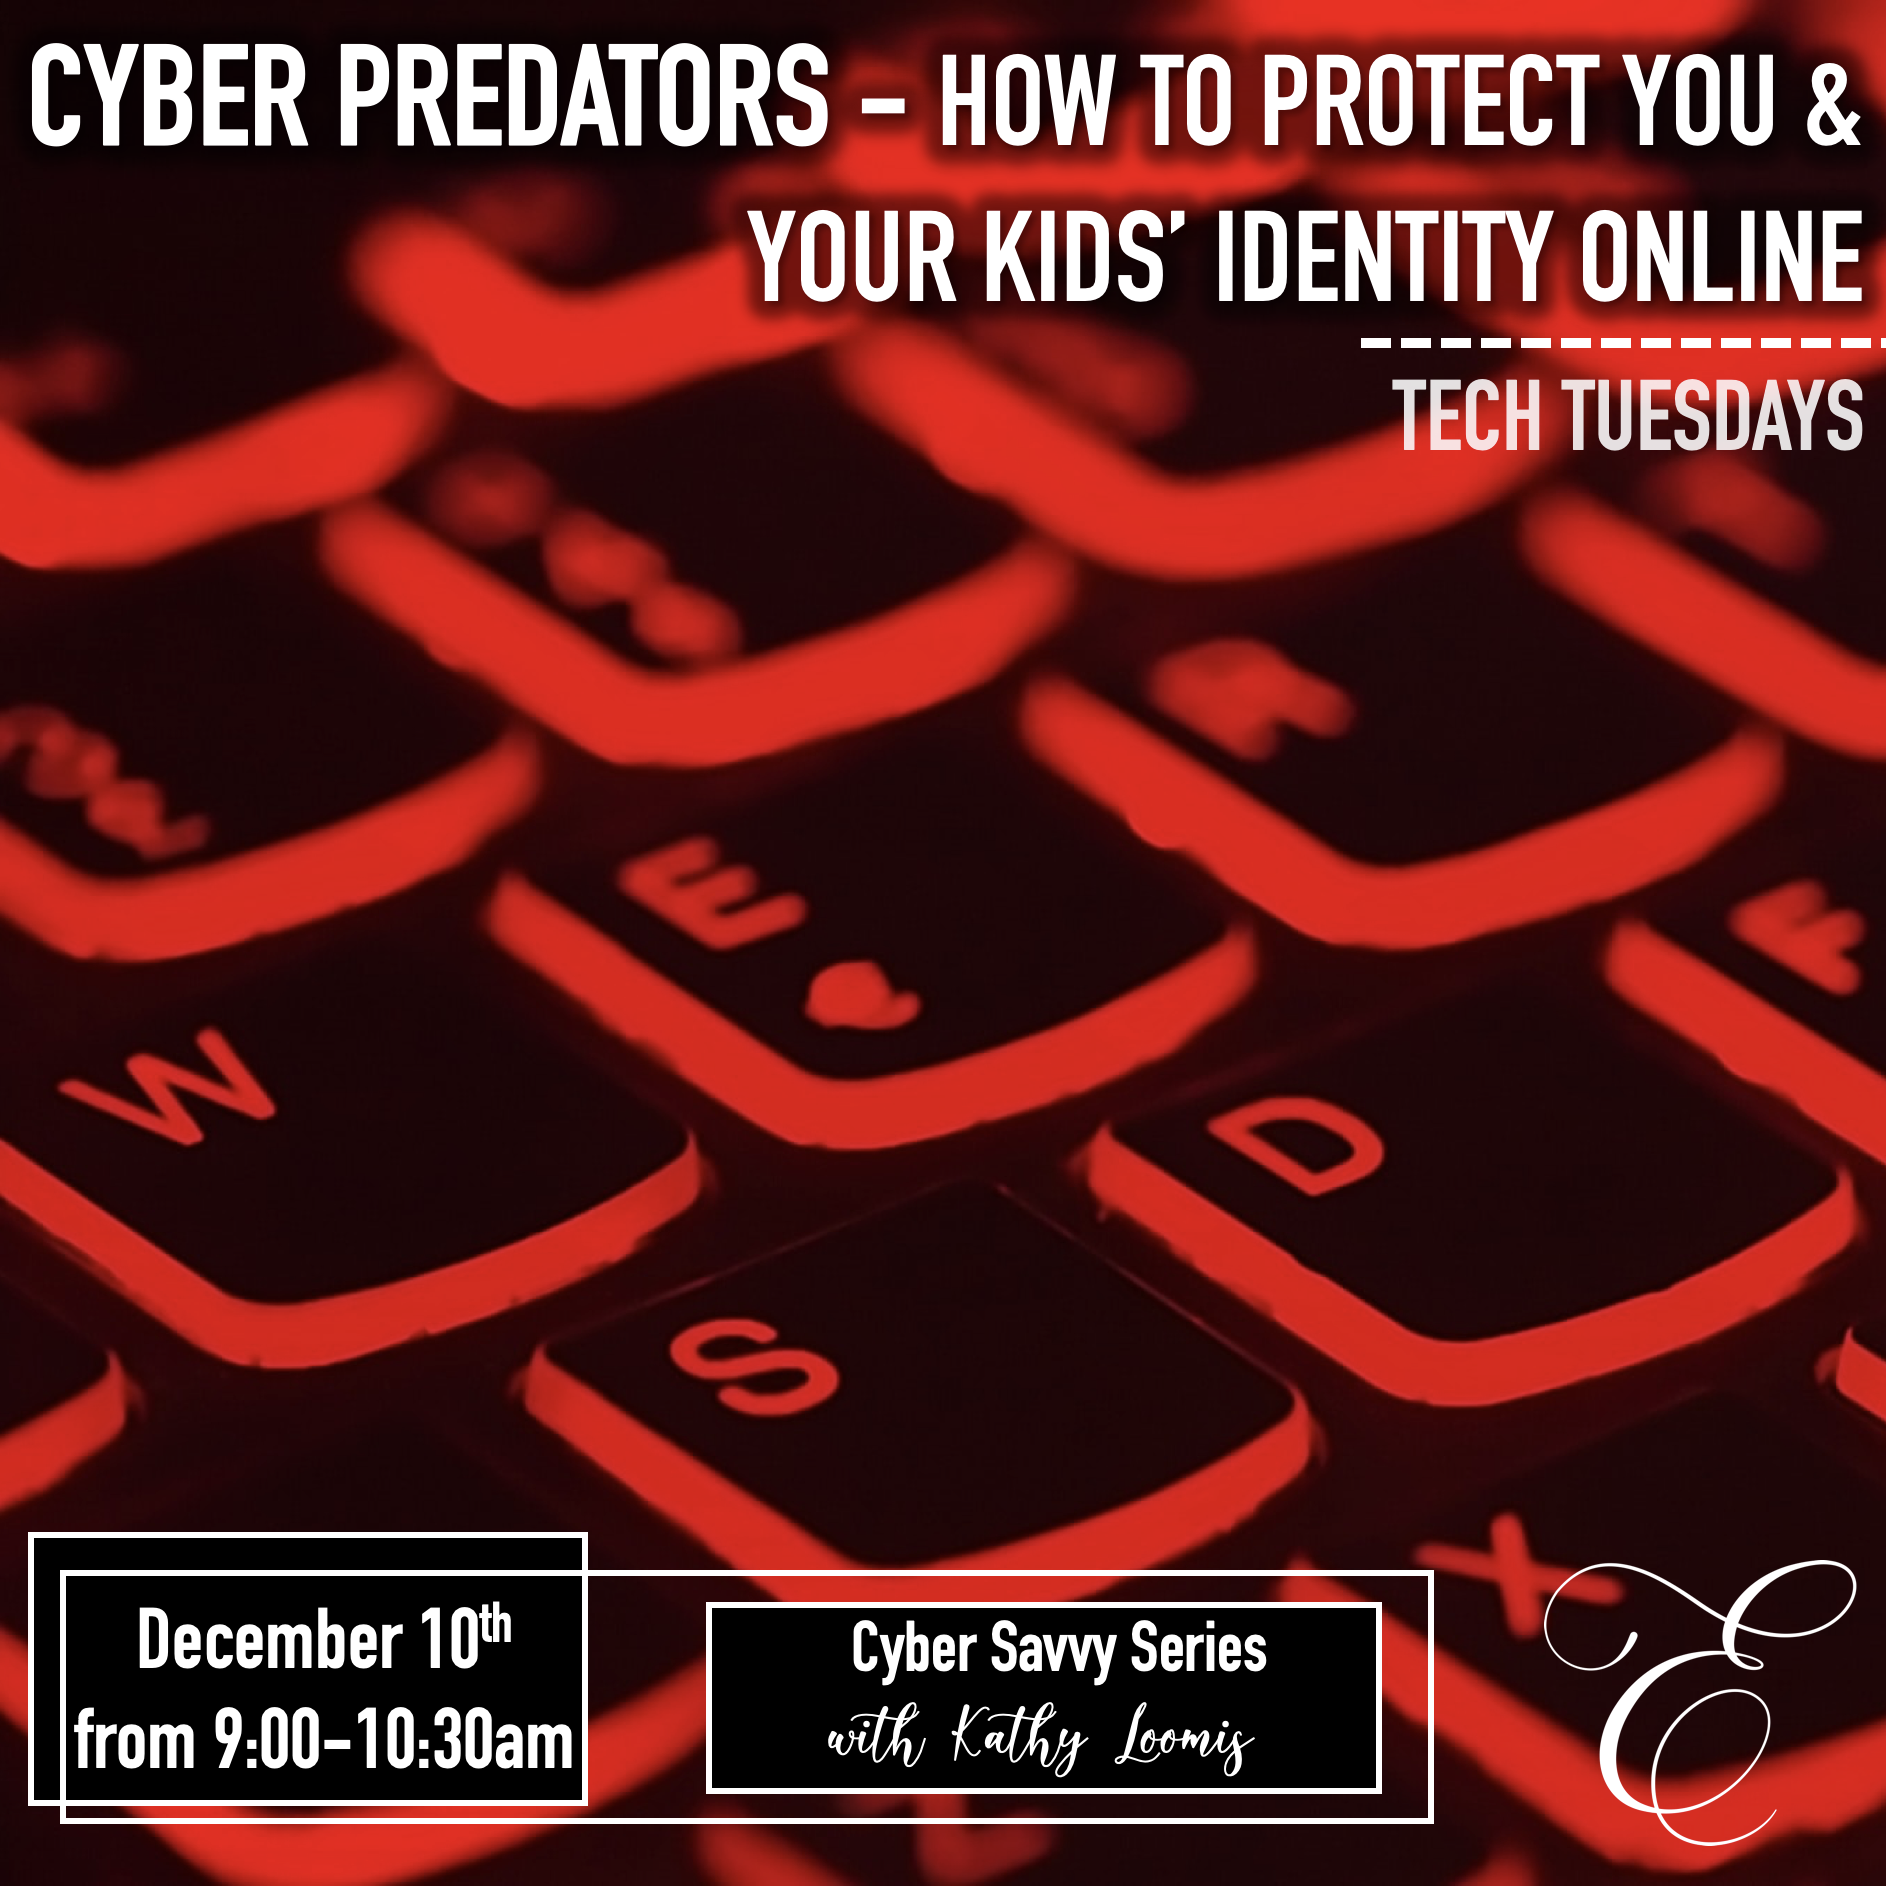 Cyber Savvy Part 4: Cyber Predators - How to Protect You & Your Kids' Identity Online